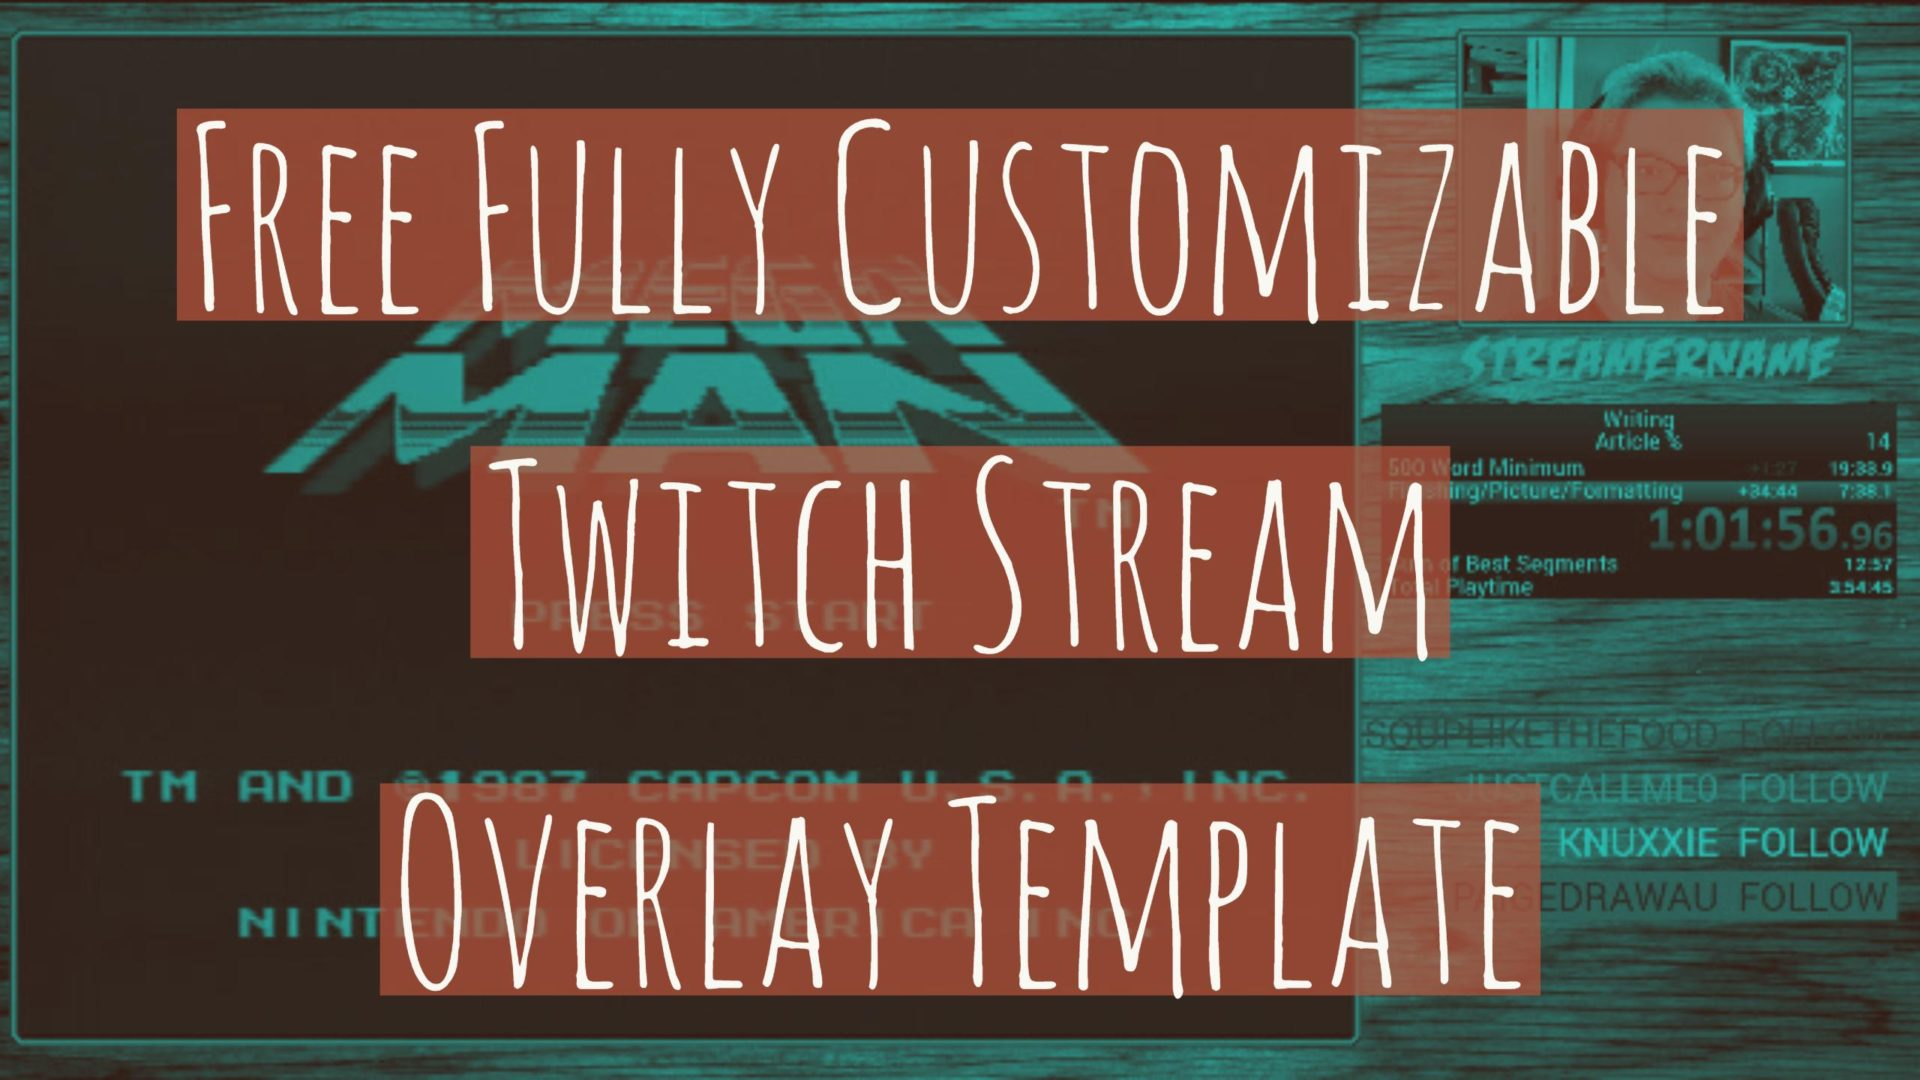 Free Fully Customizable Twitch Stream Overlay Template